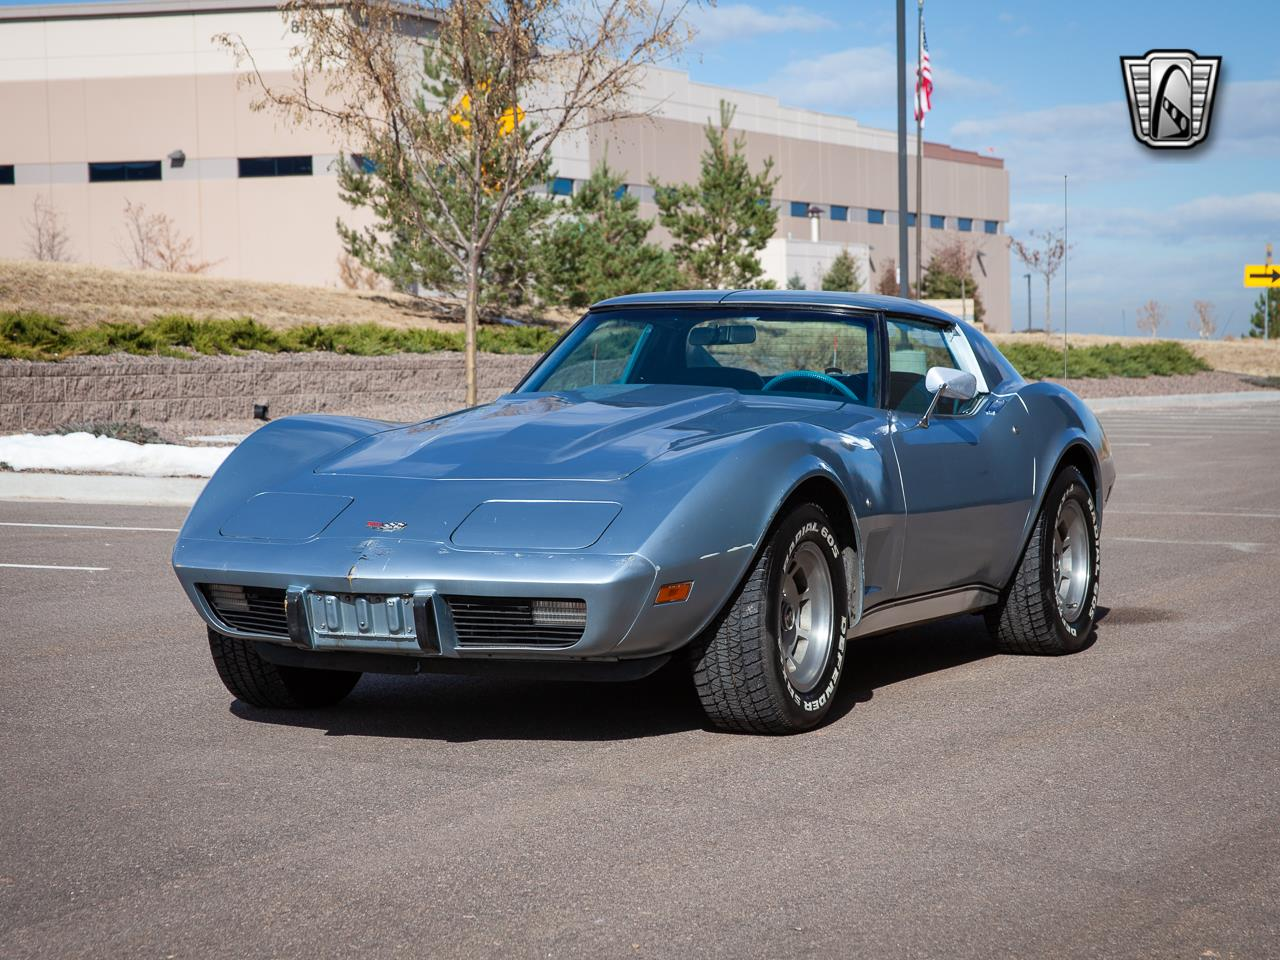 1977 Chevrolet Corvette (CC-1351261) for sale in O'Fallon, Illinois